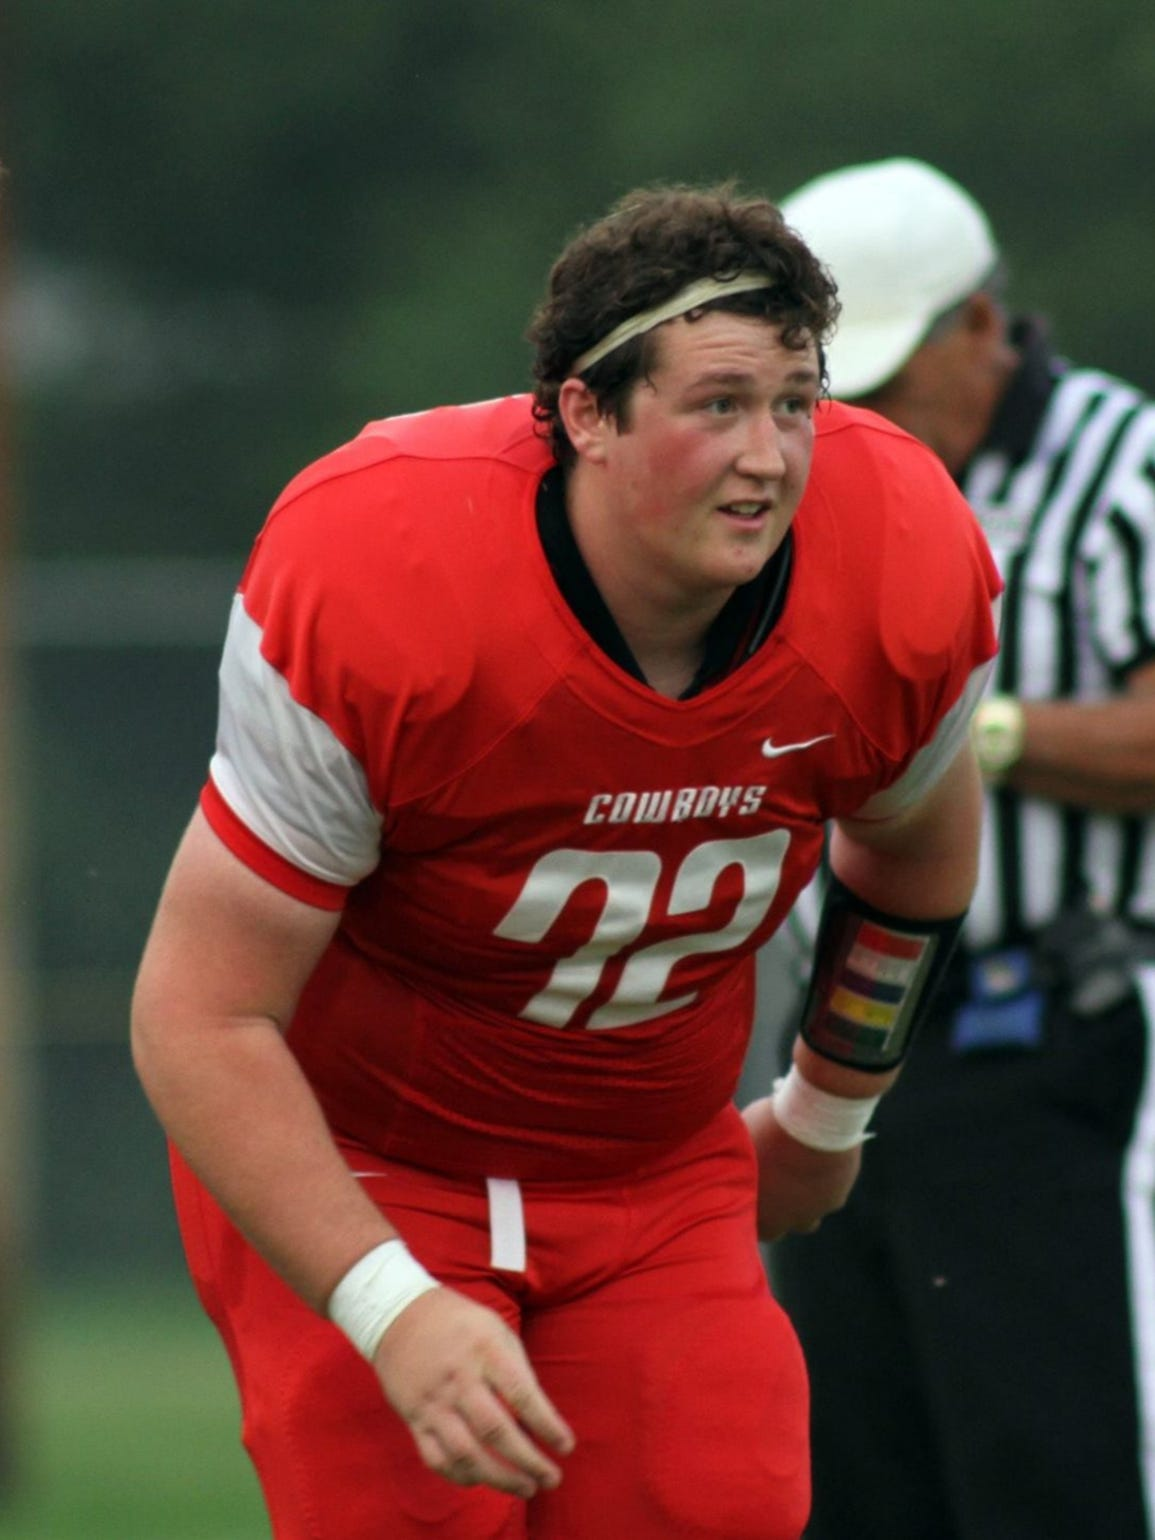 Conrad High senior Connor Peters recovered from a serious